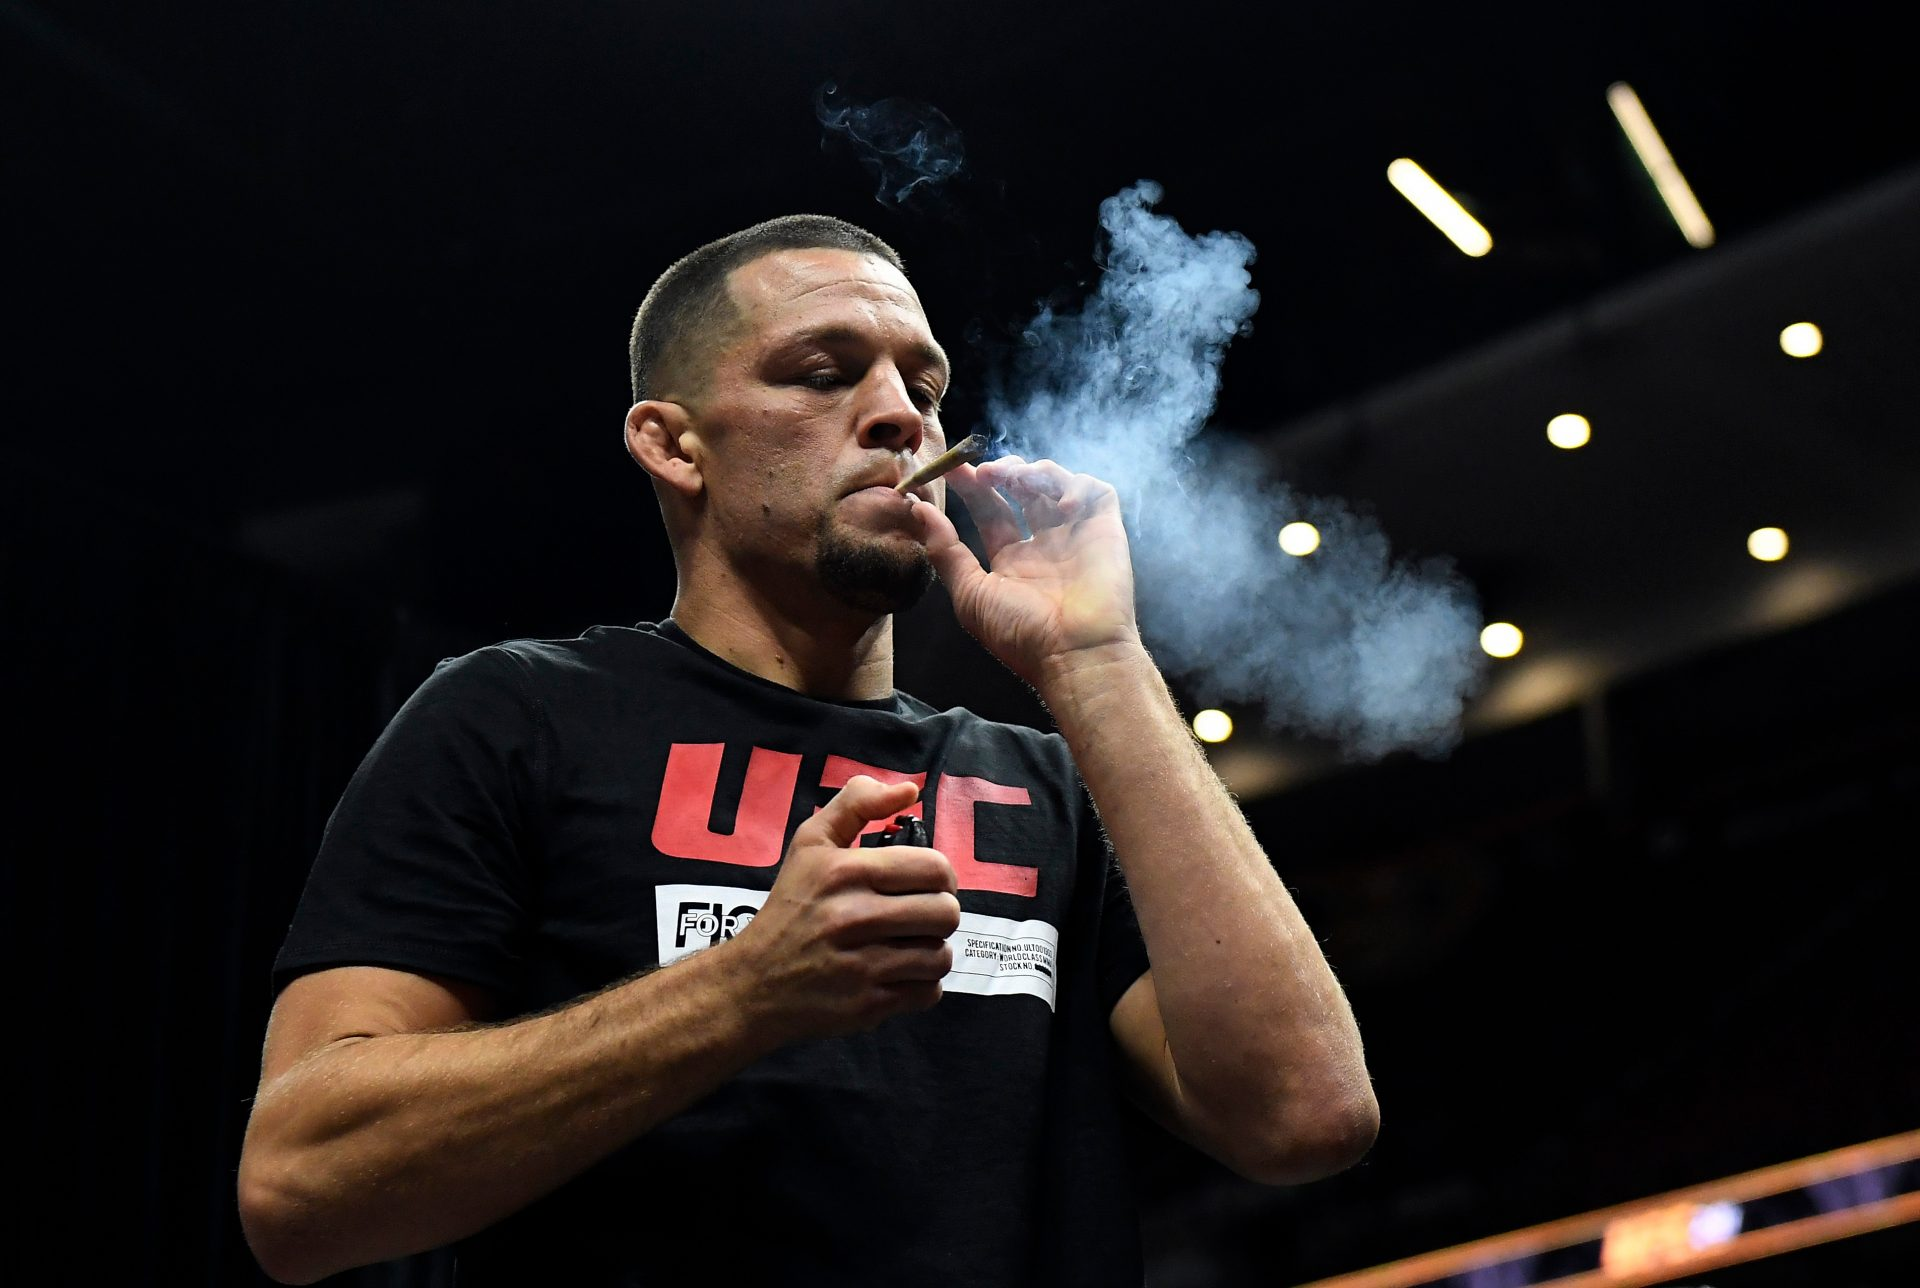 UFC and USADA will no longer punish athletes for Marijuana use - Marijuana